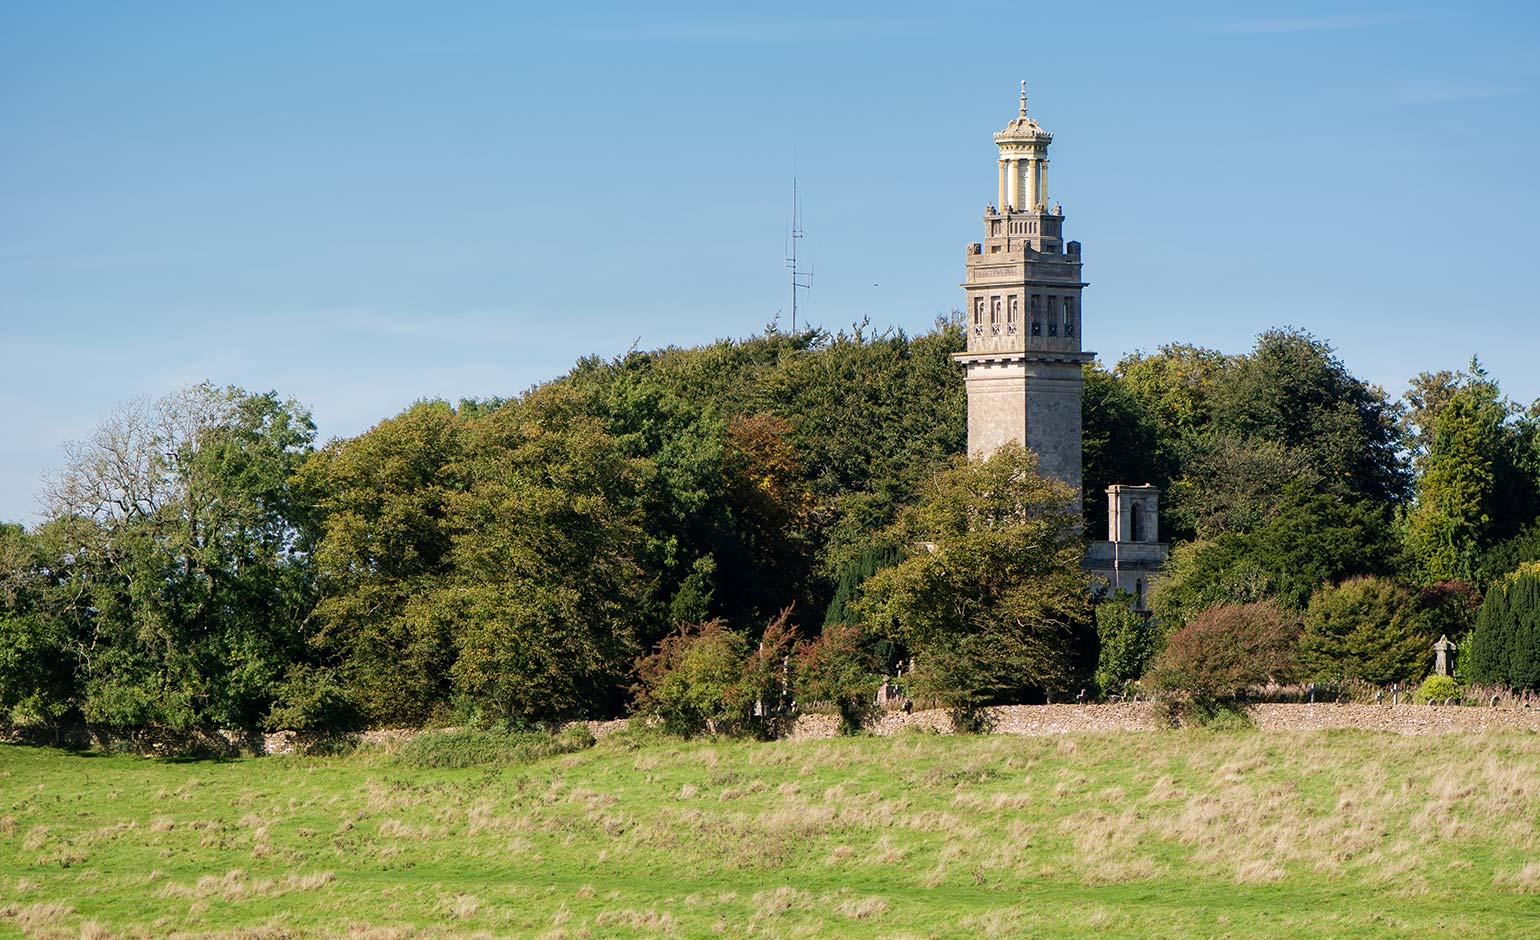 Young families invited to enjoy secret garden trail at Beckford's Tower